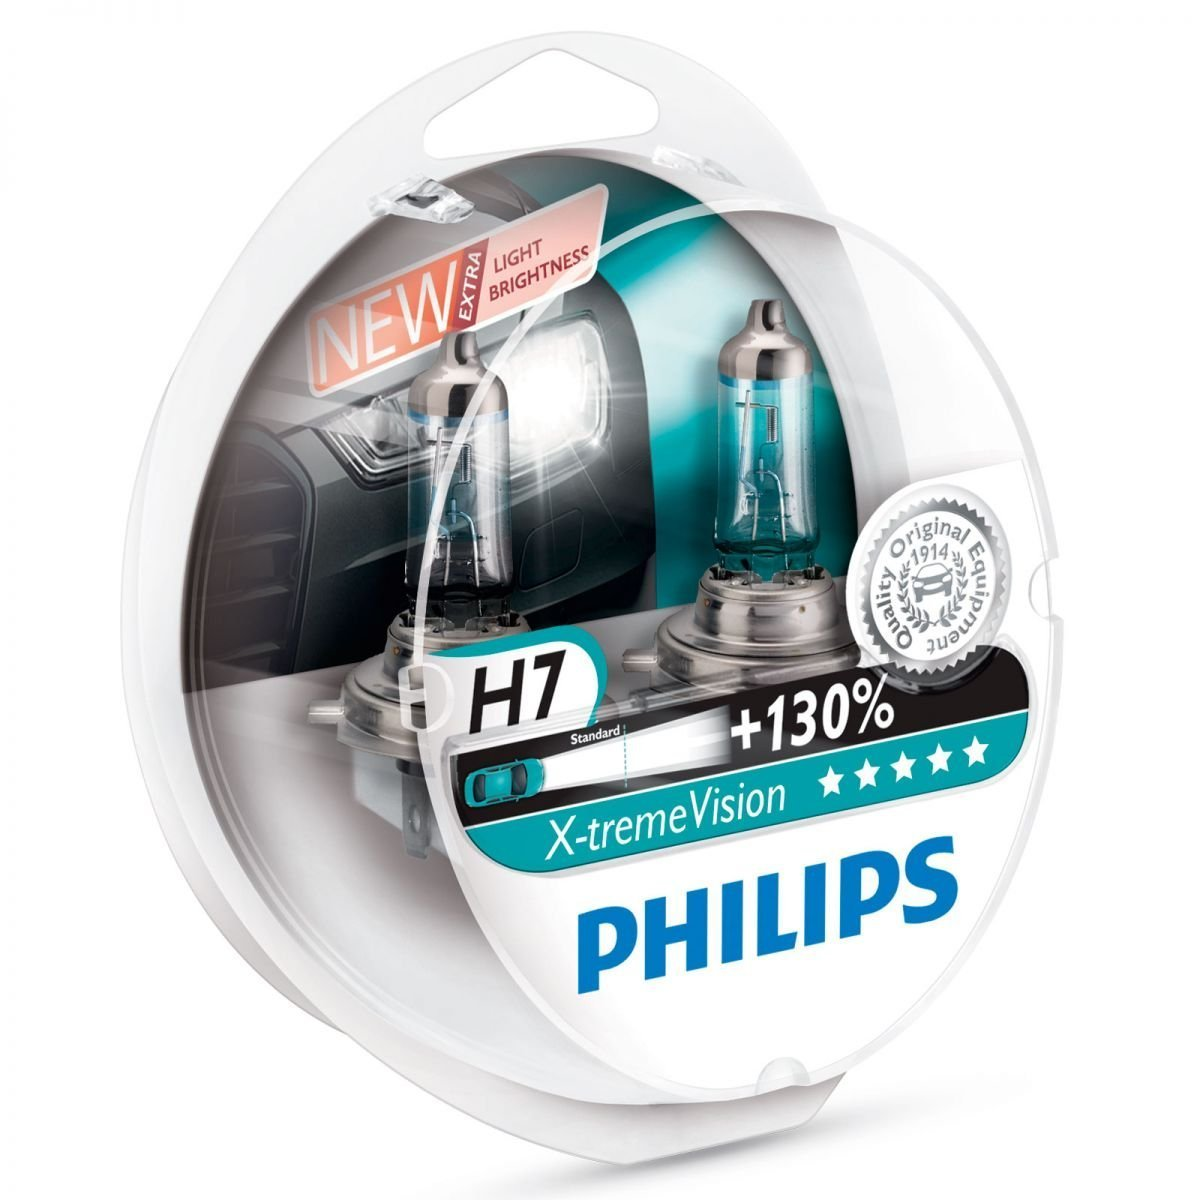 Philips X-treme Vision H7 Headlight Bulb